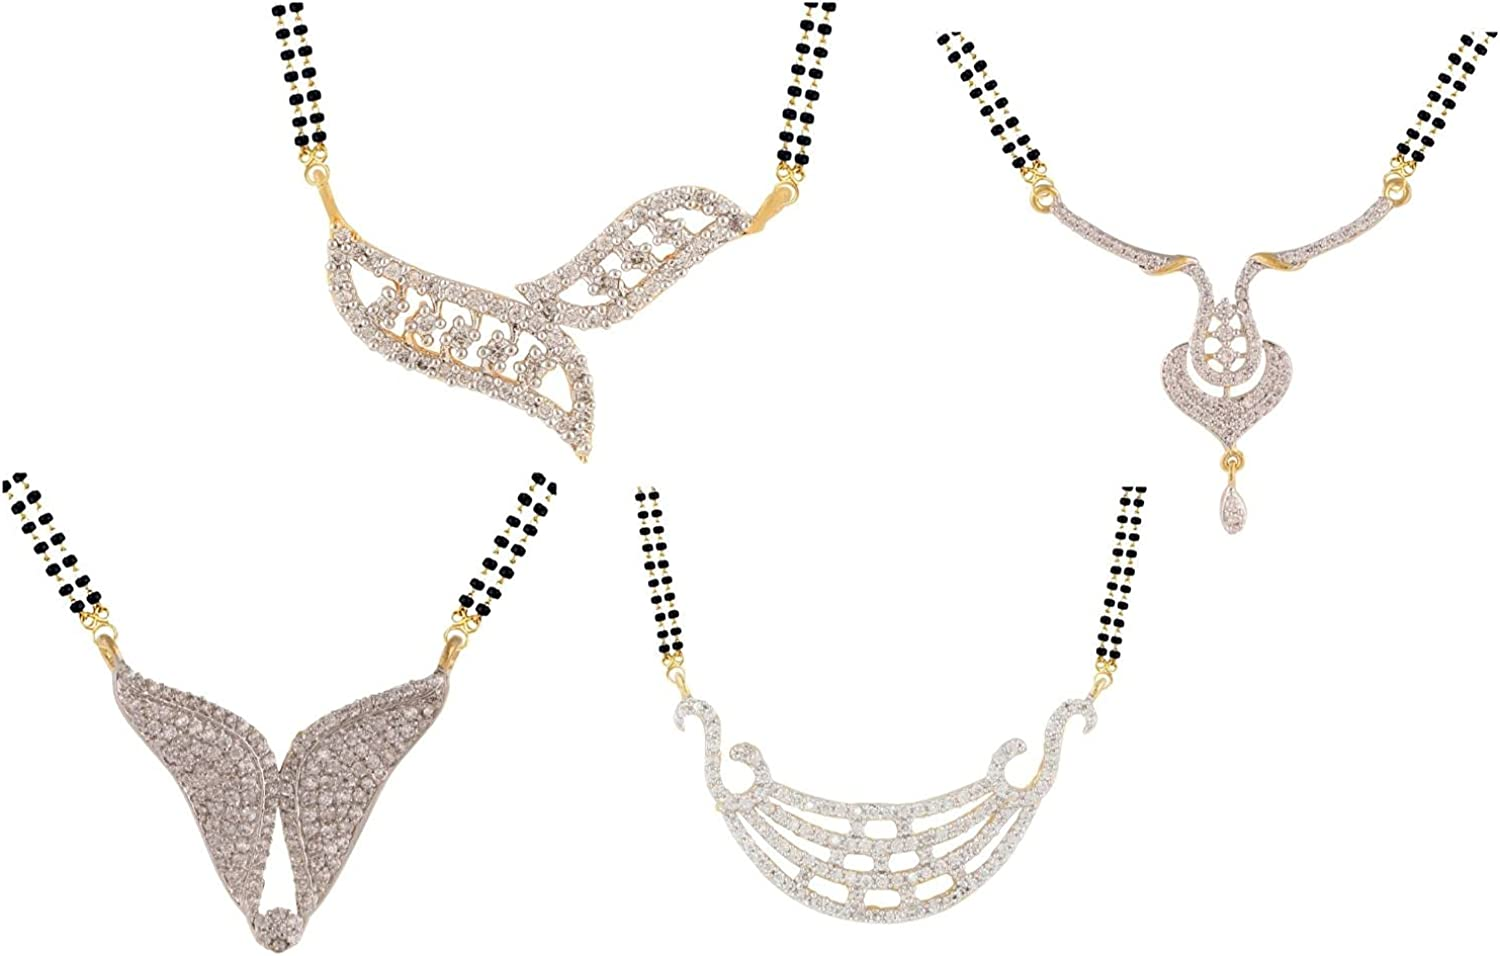 Efulgenz Combo of Indian Bollywood Ethnic Traditional Mangalsutra Pendant with Chain Jewelry for Women (Set of 4)